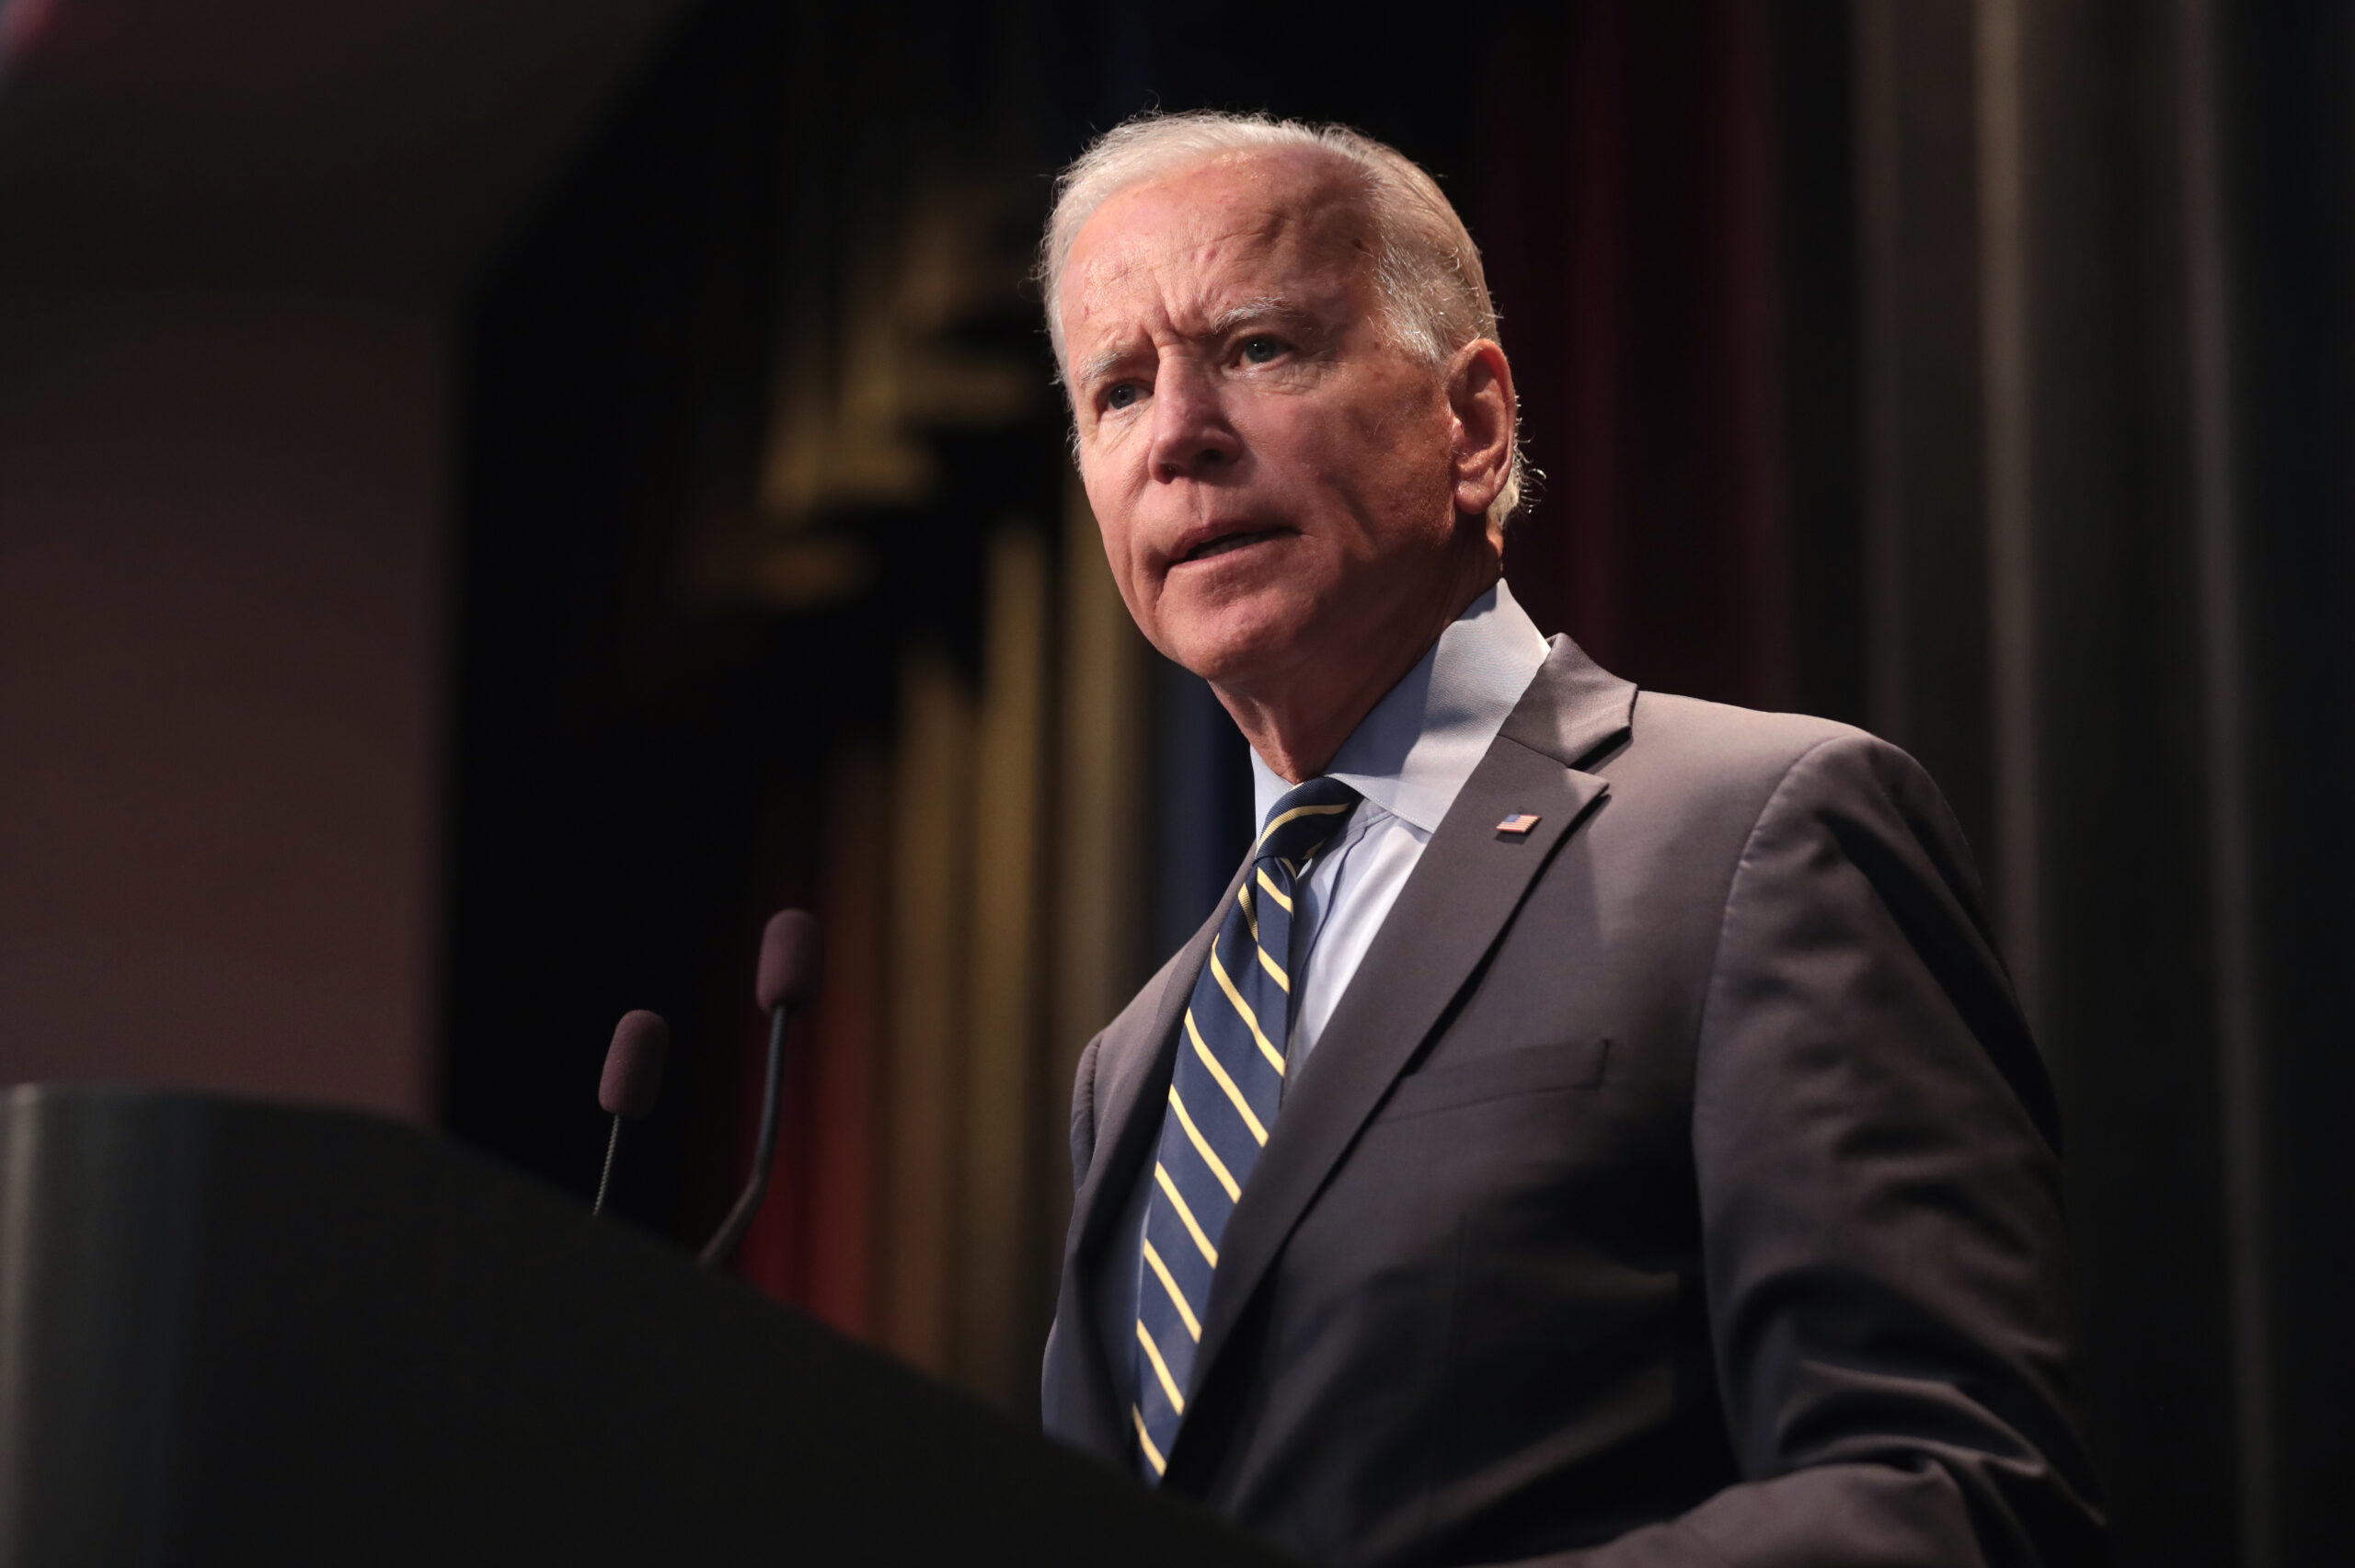 Biden Urged to Sign Executive Order to End Extinction Crisis